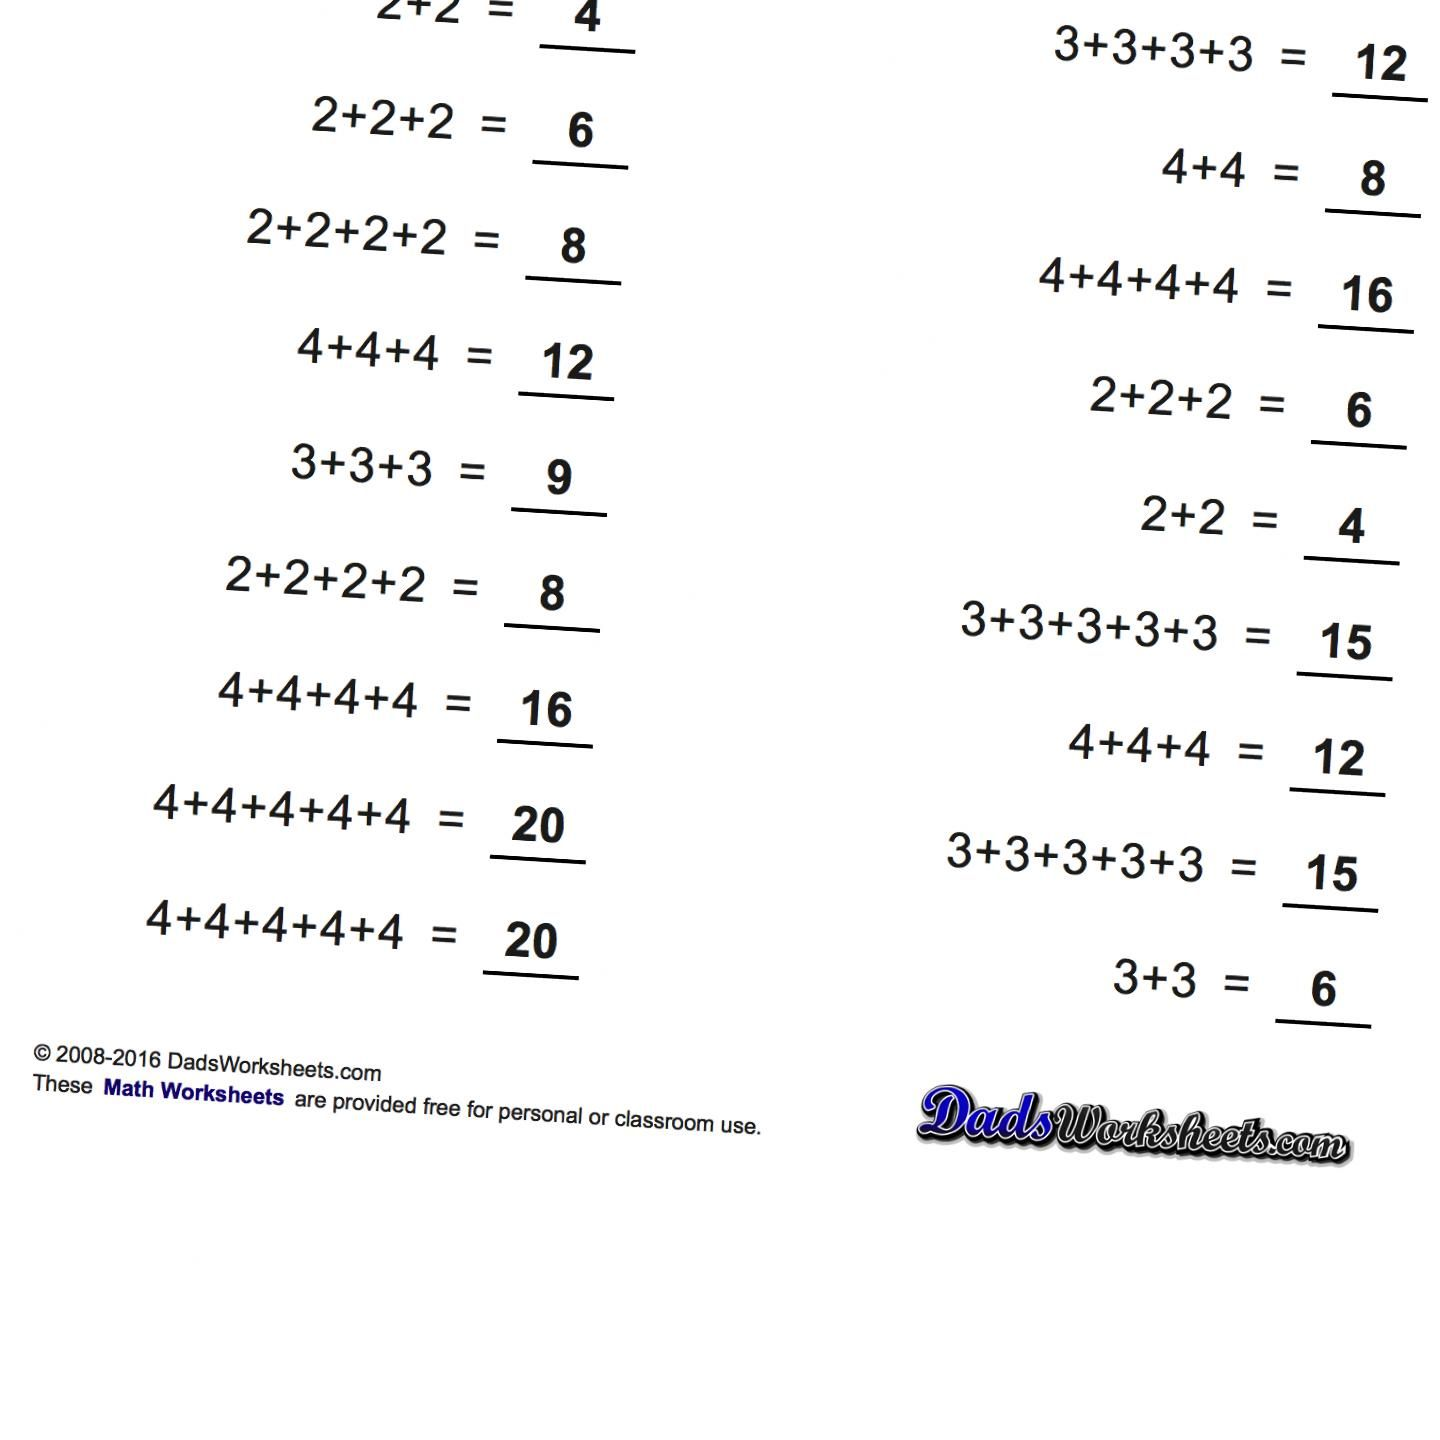 Addition Worksheets That Introduce Multiples And Skip Counting These Addition Worksheets Are An